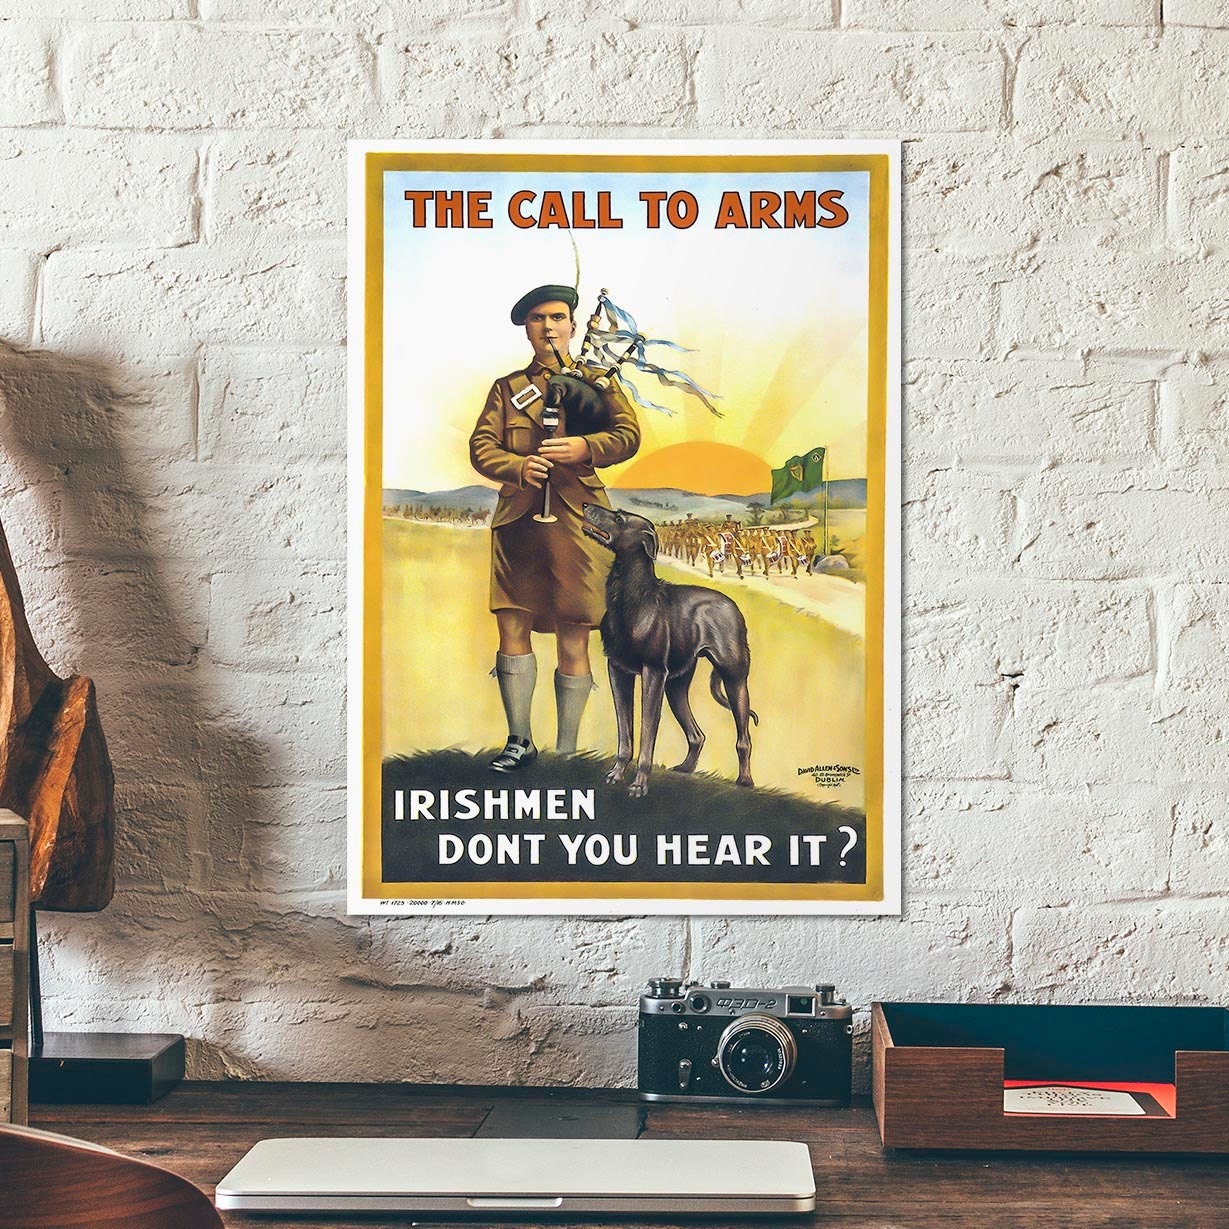 WWI British Irish Army recruitment poster showing showing a